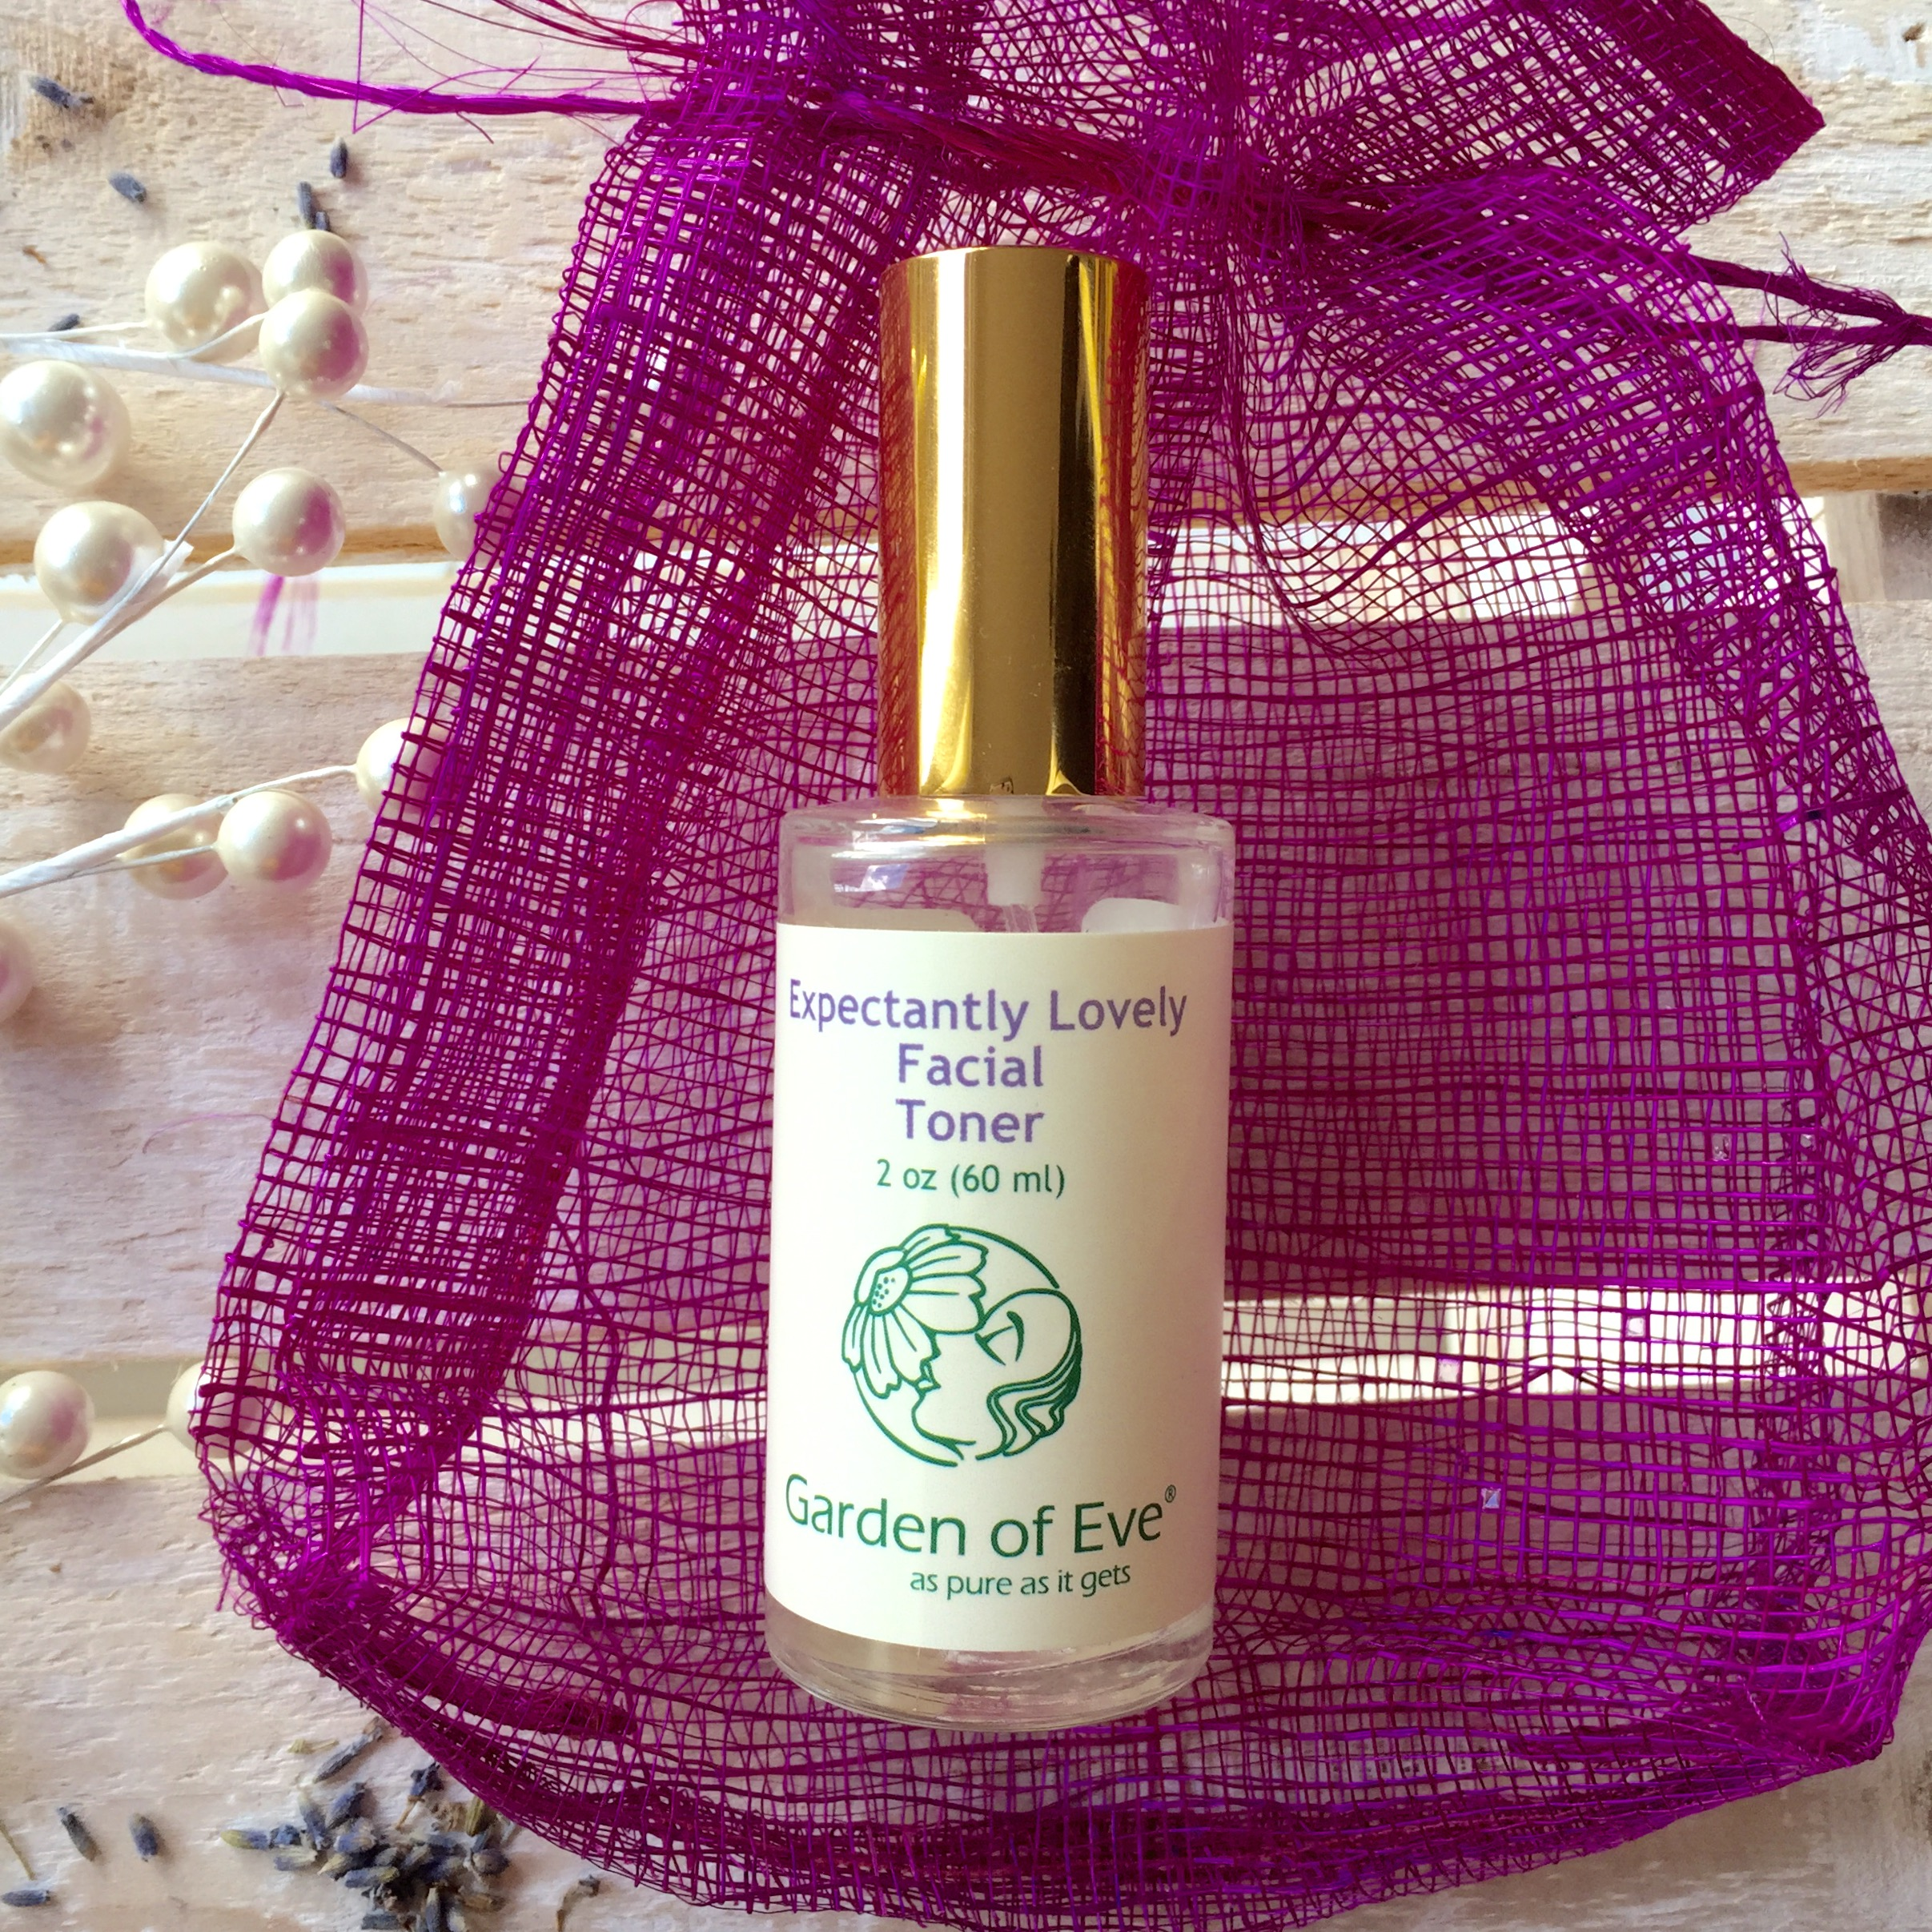 Of eve skin care facial cleansing nectar